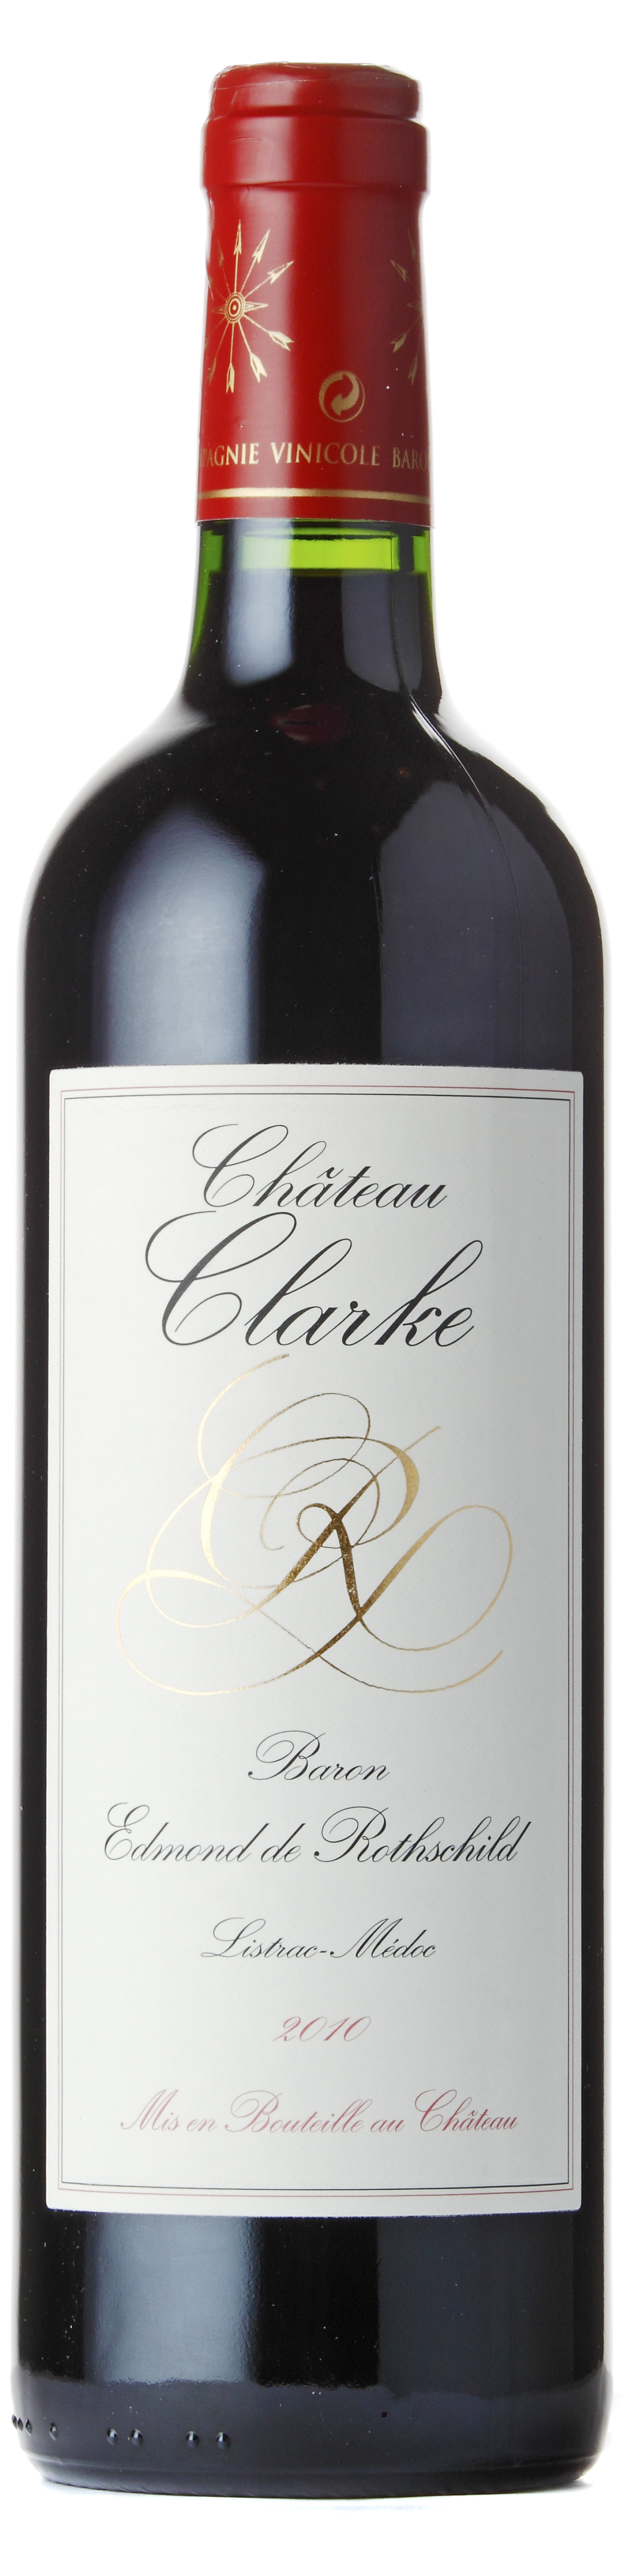 Ch teau clarke 2010 expert wine ratings and wine reviews for Chateau clarke